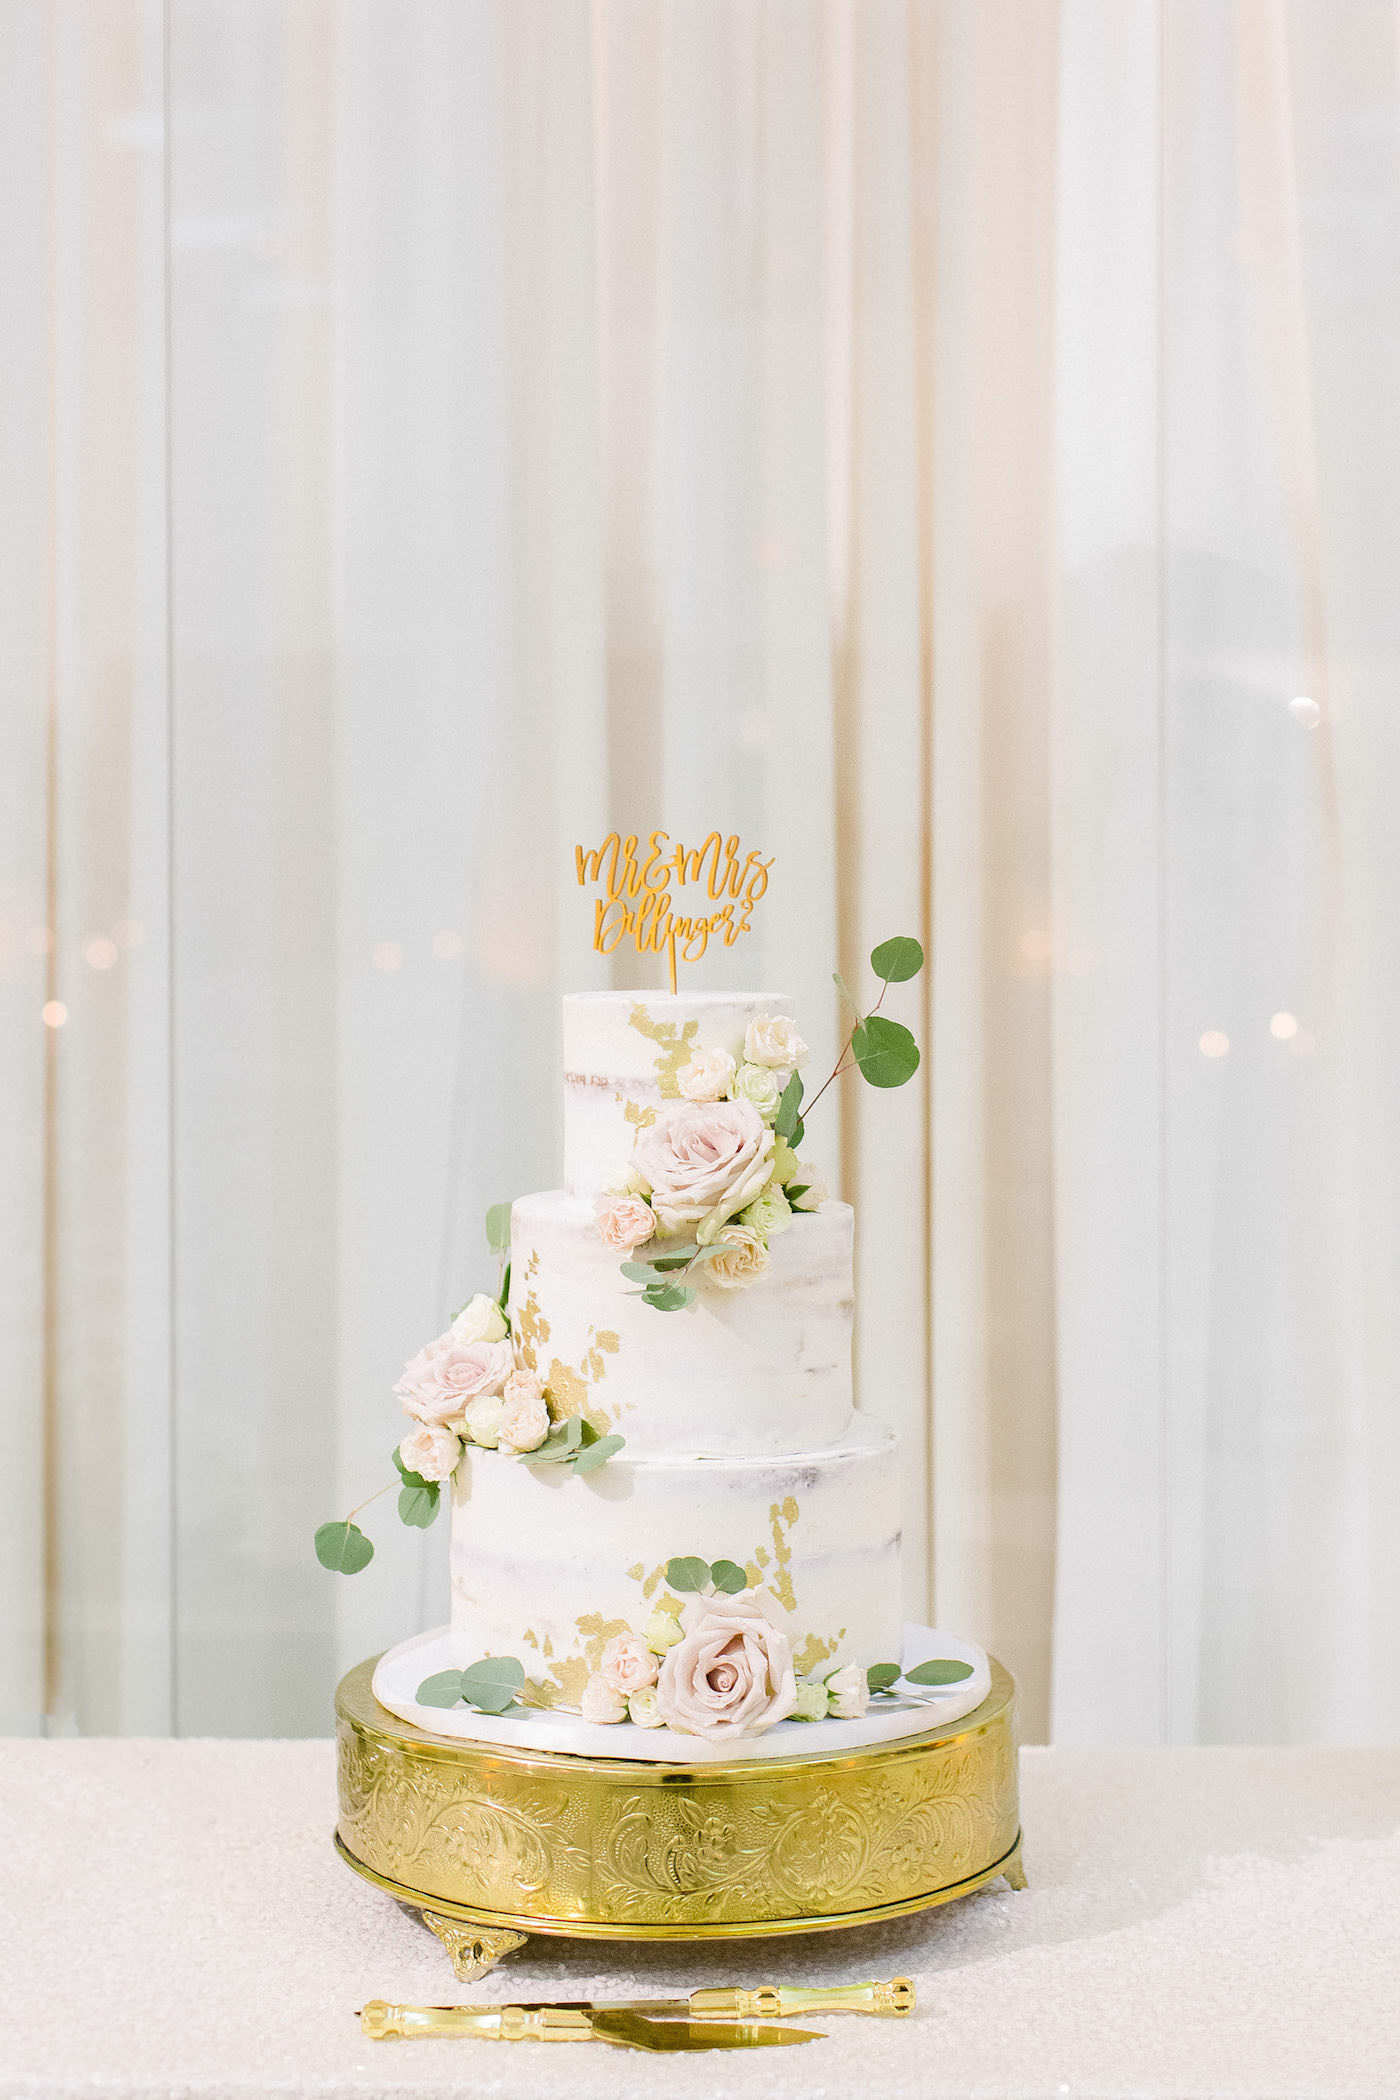 Classic Three Tier White Wedding Cake, Semi Naked Frosted Cake with Gold Foil Detailing, Blush Pink Roses Florals with Greenery Eucalyptus, Custom Gold Cake Topper and Serving Set | Tampa Bay Wedding Planner Breezin' Weddings